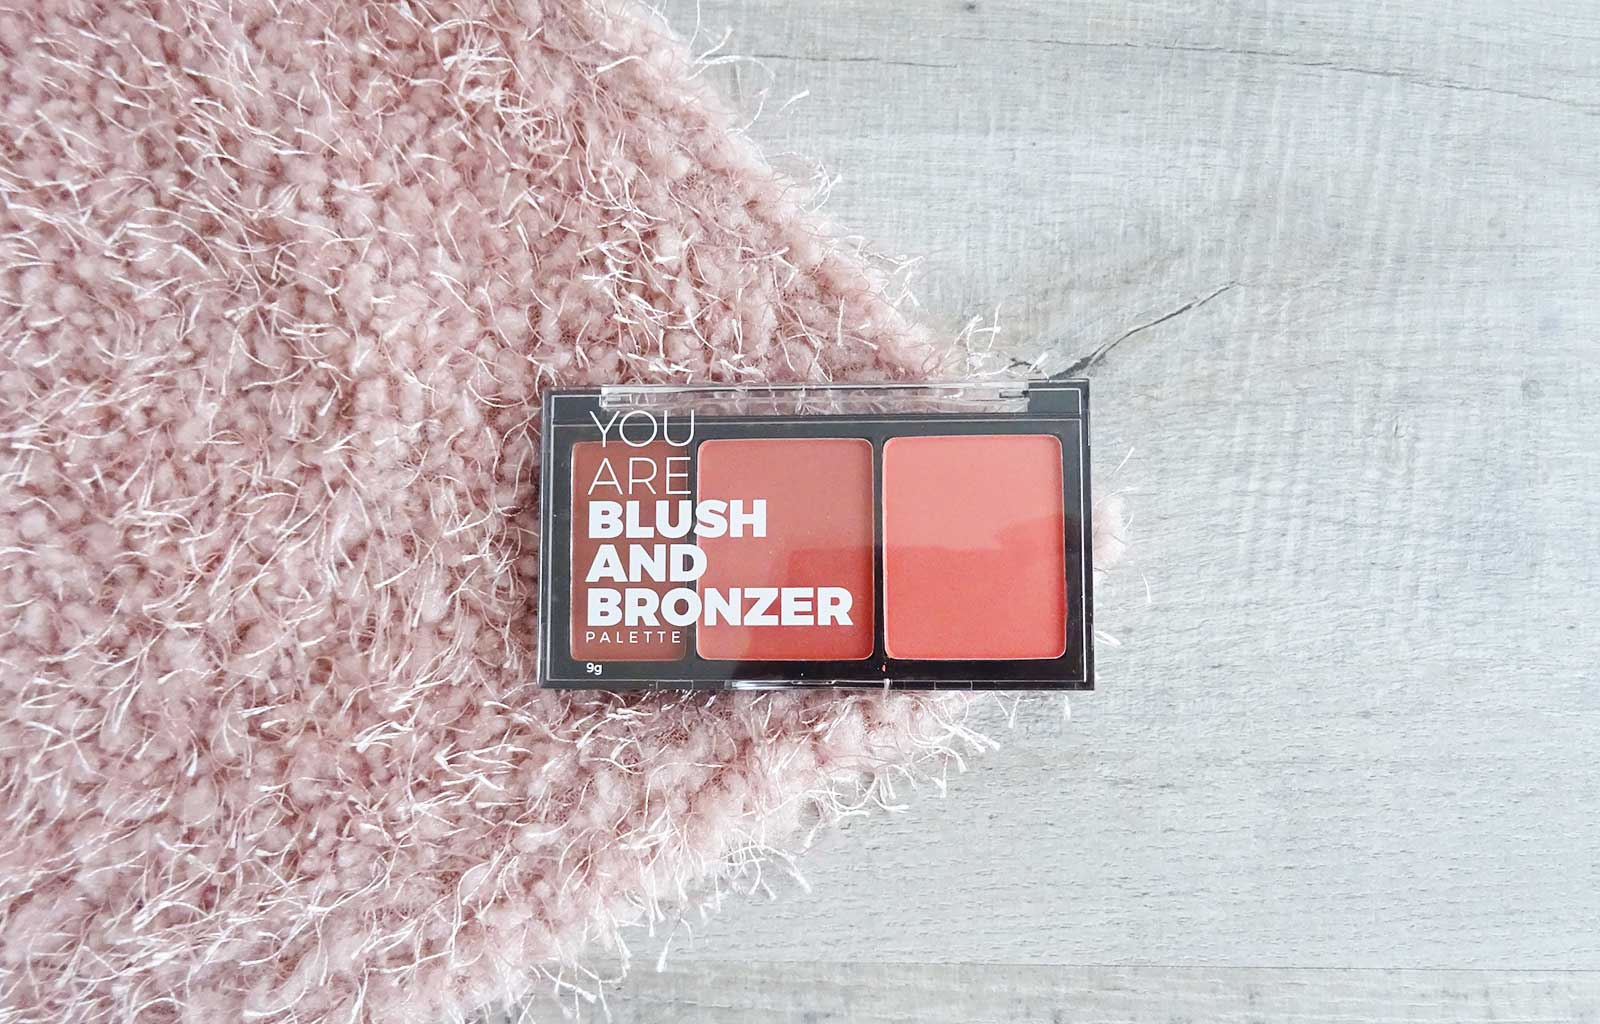 Palette You are blush and bronzer